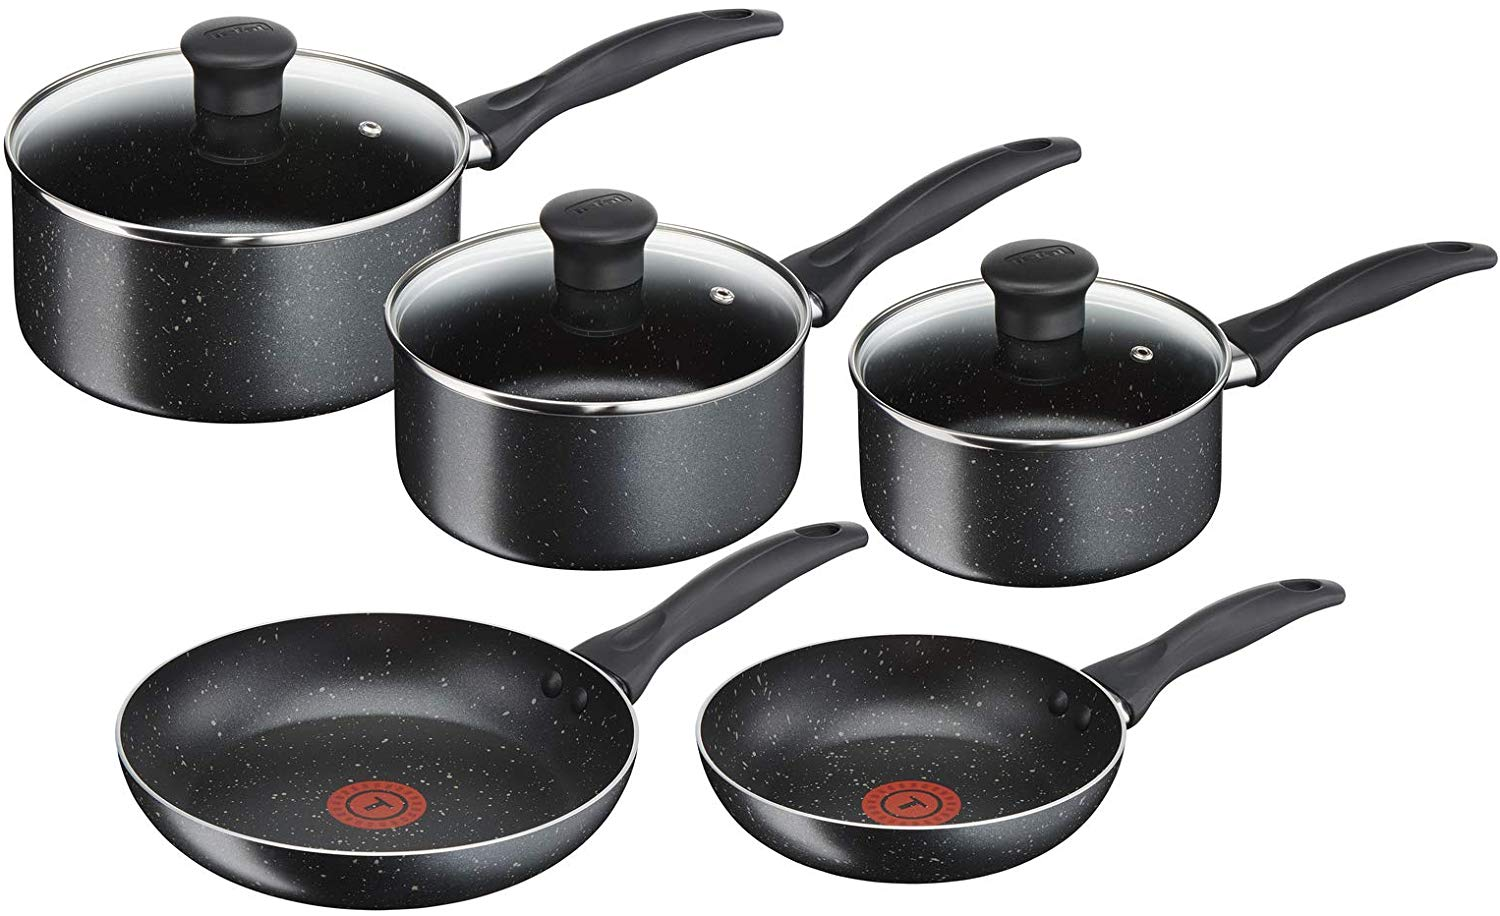 Tefal Origins 5 Piece Stone Pots and Pans set £39.99 Delivered On Amazon